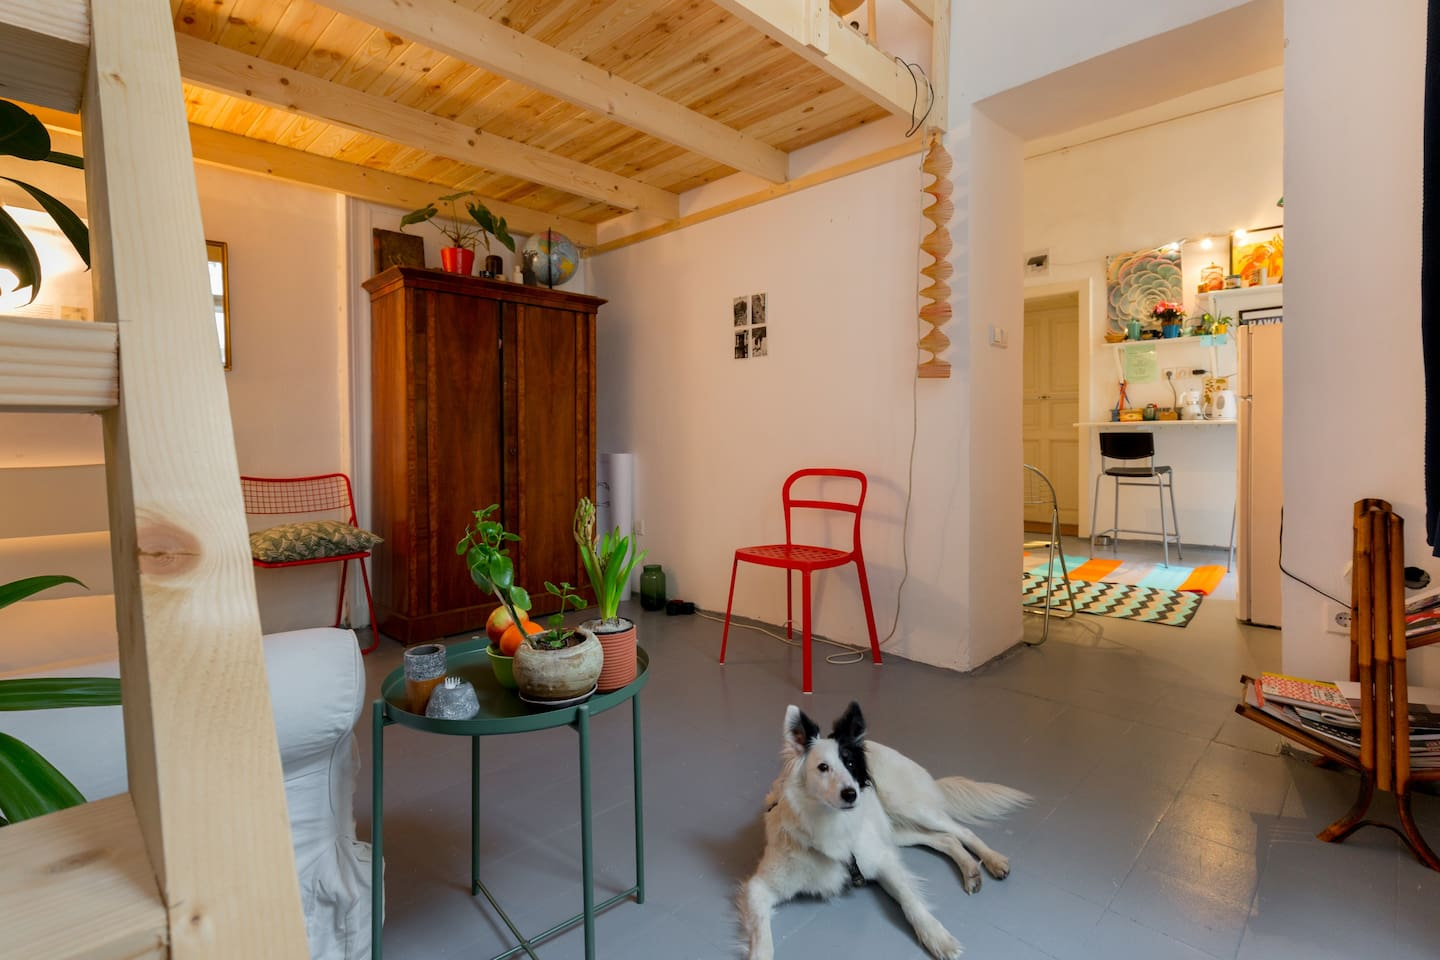 the dog doesn't come with the apartment, sorry